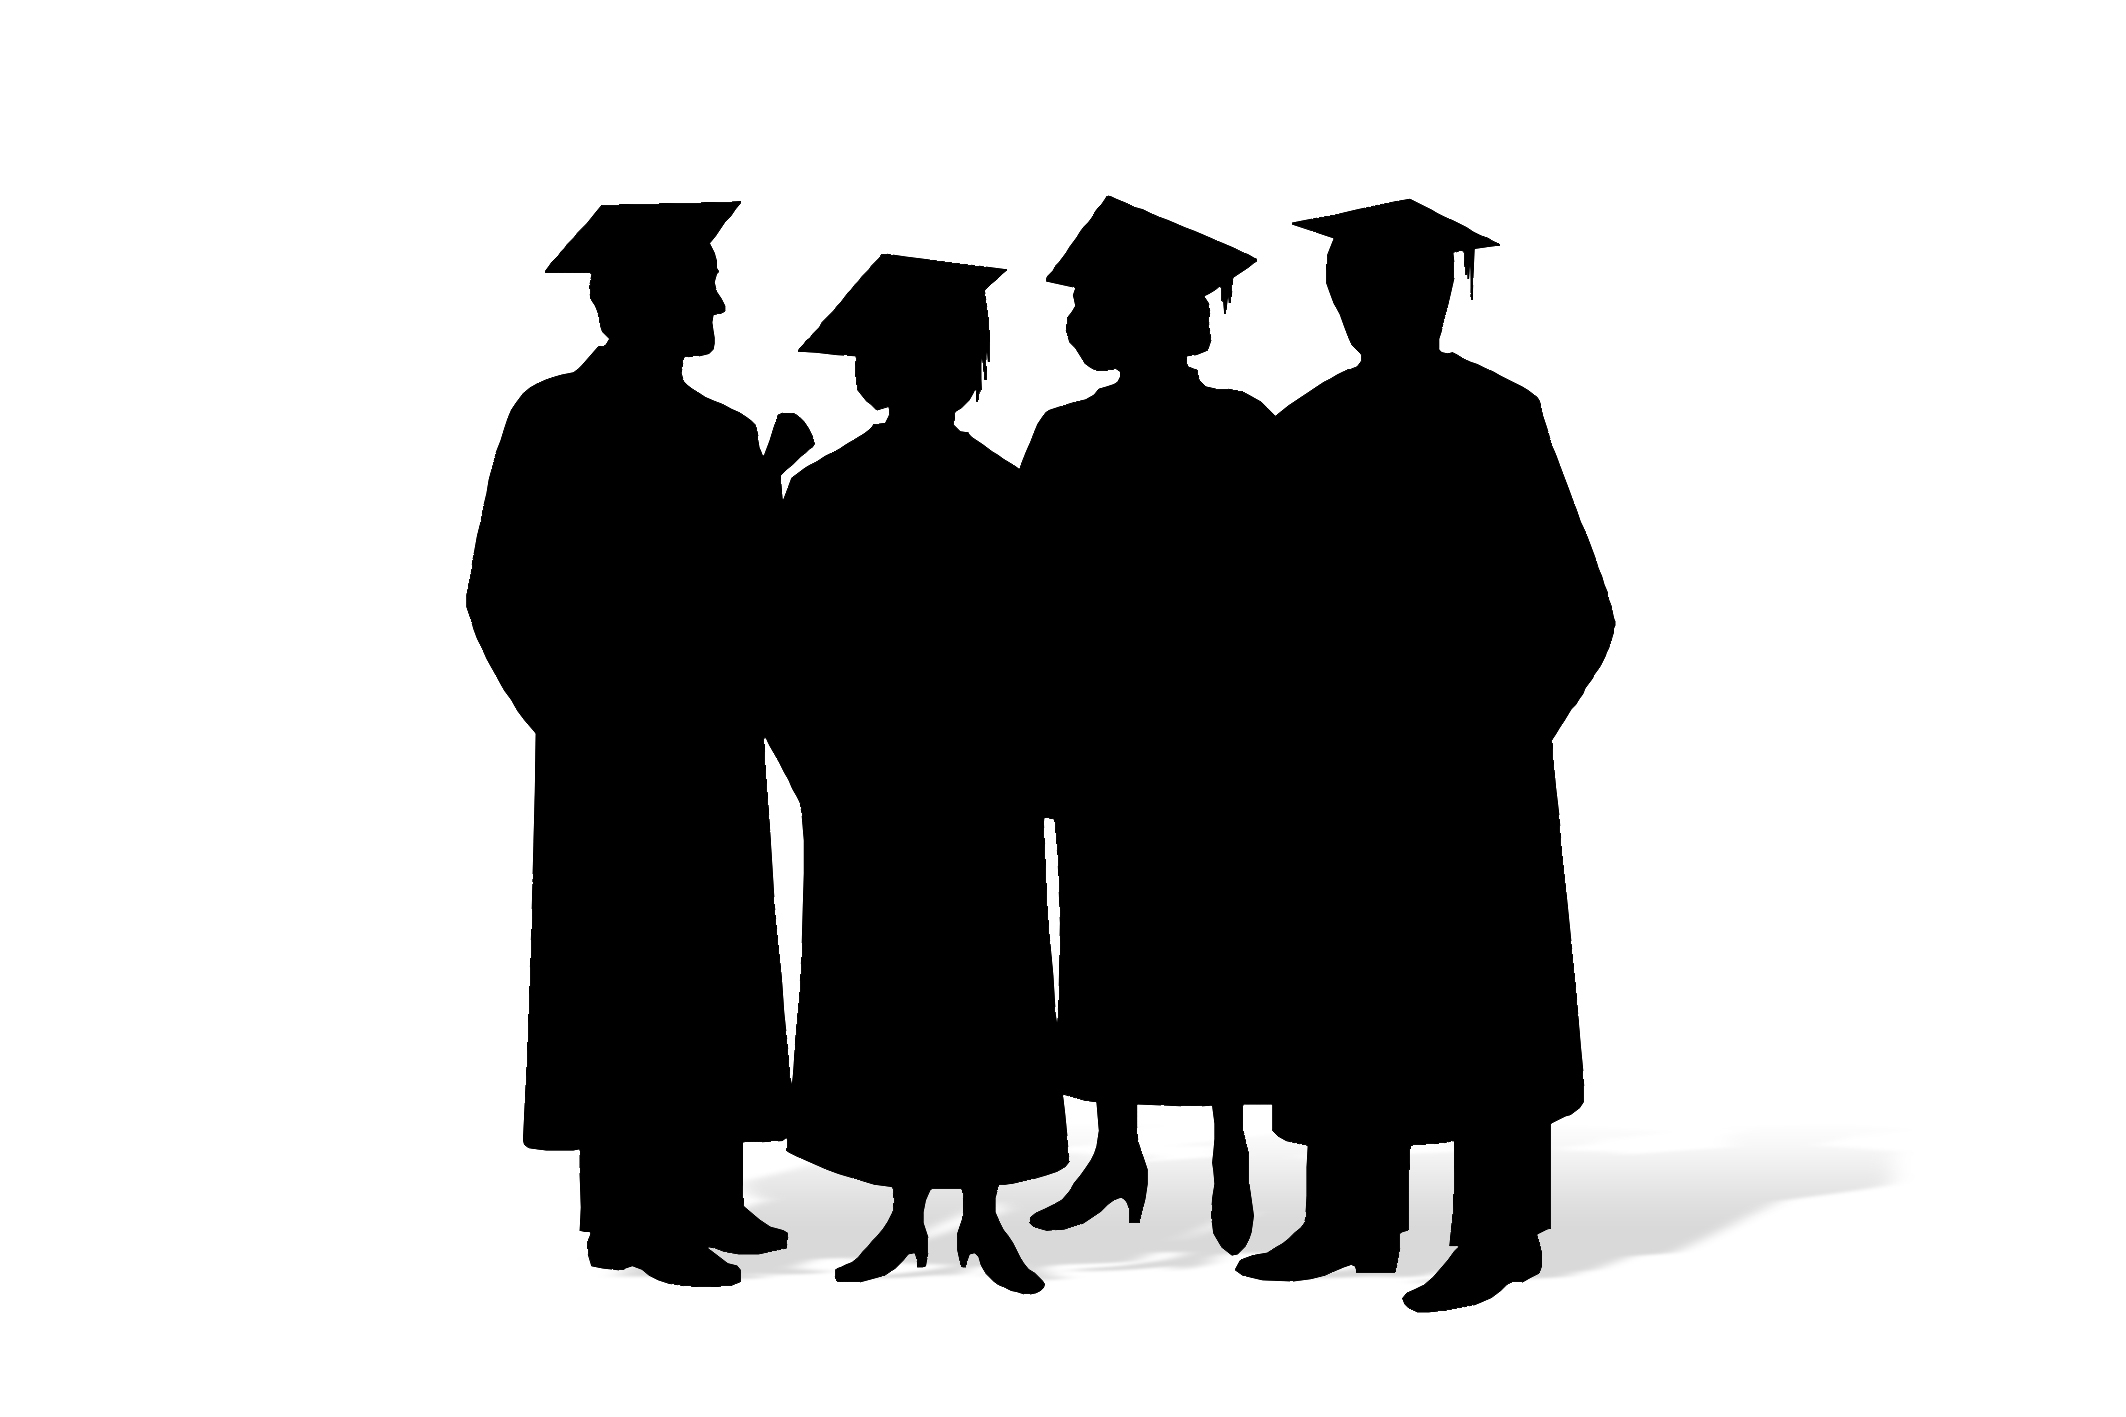 Graduate college student clipart 3 » Clipart Station.